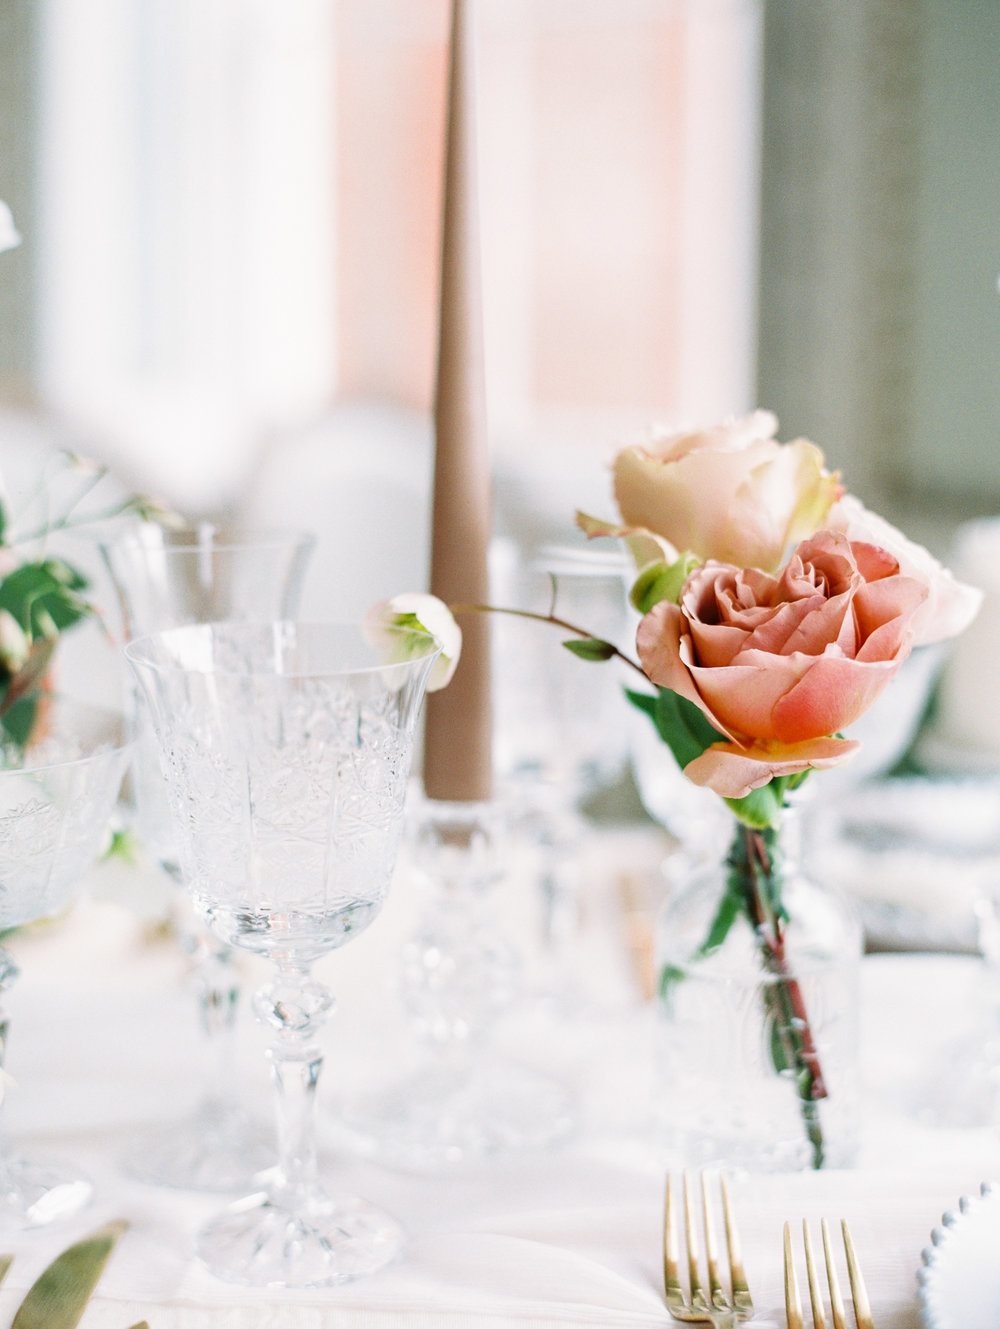 The Timeless Stylist-Elegant and Romantic Wedding Design and Styling-Cut Glass Candlesticks